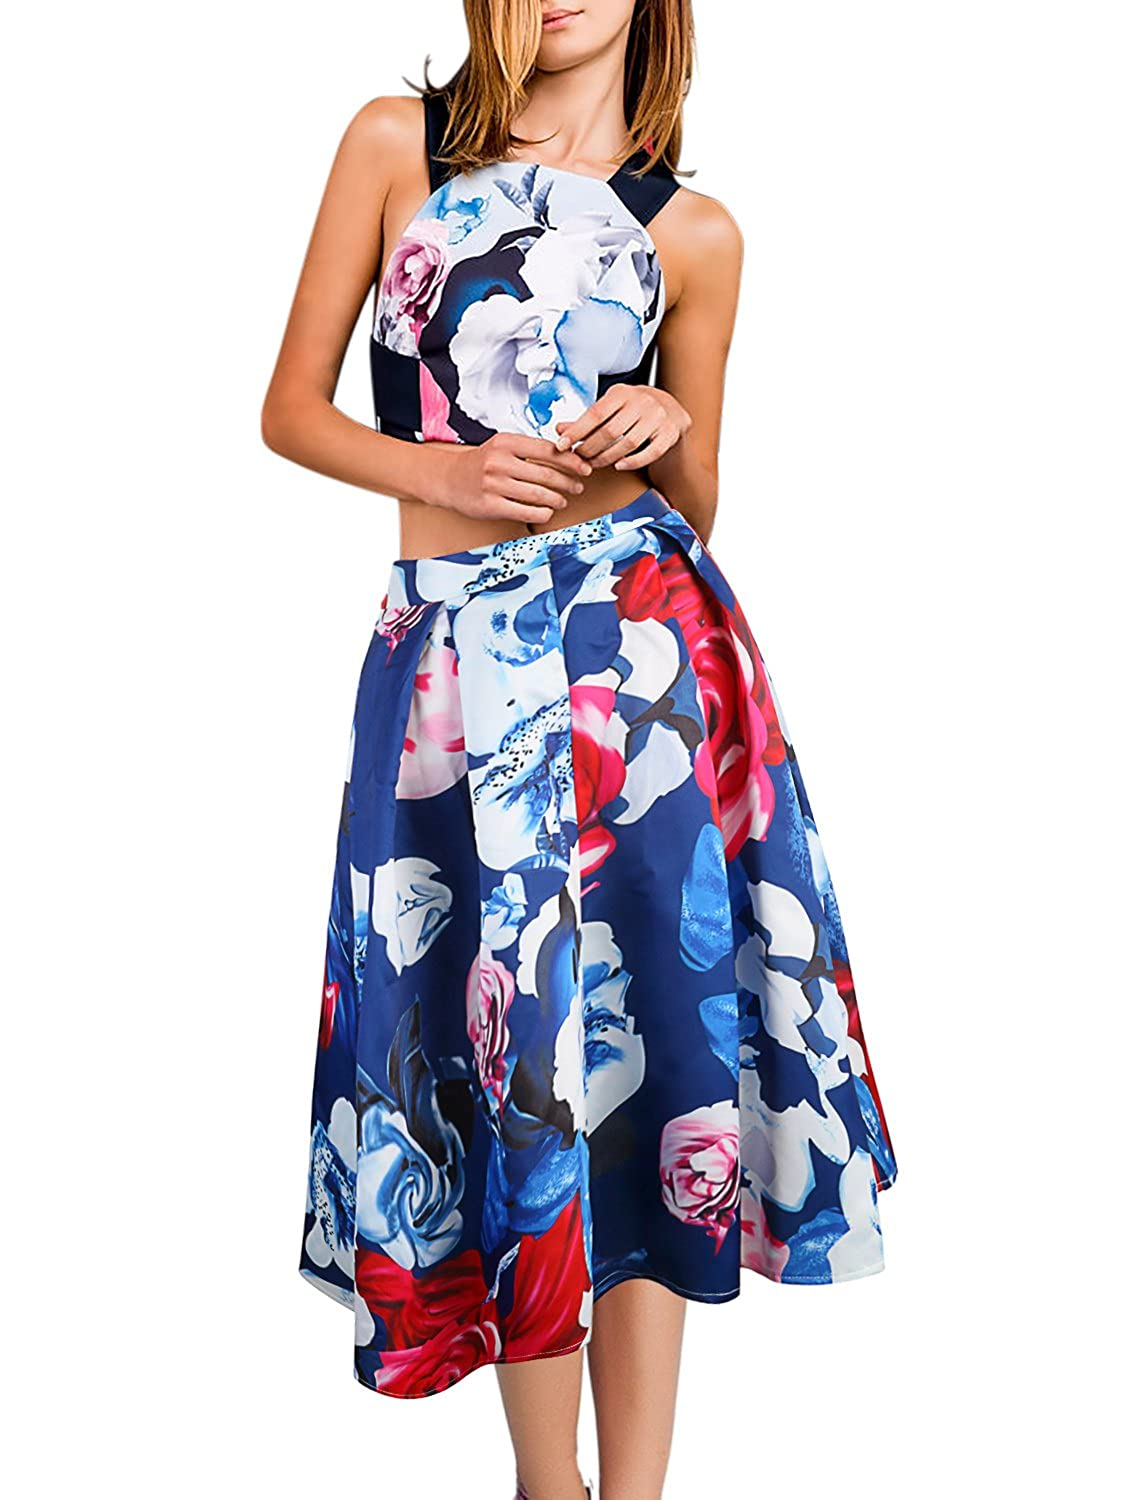 7253ae8904c Top 10 wholesale A Line Midi Skirt Outfit - Chinabrands.com